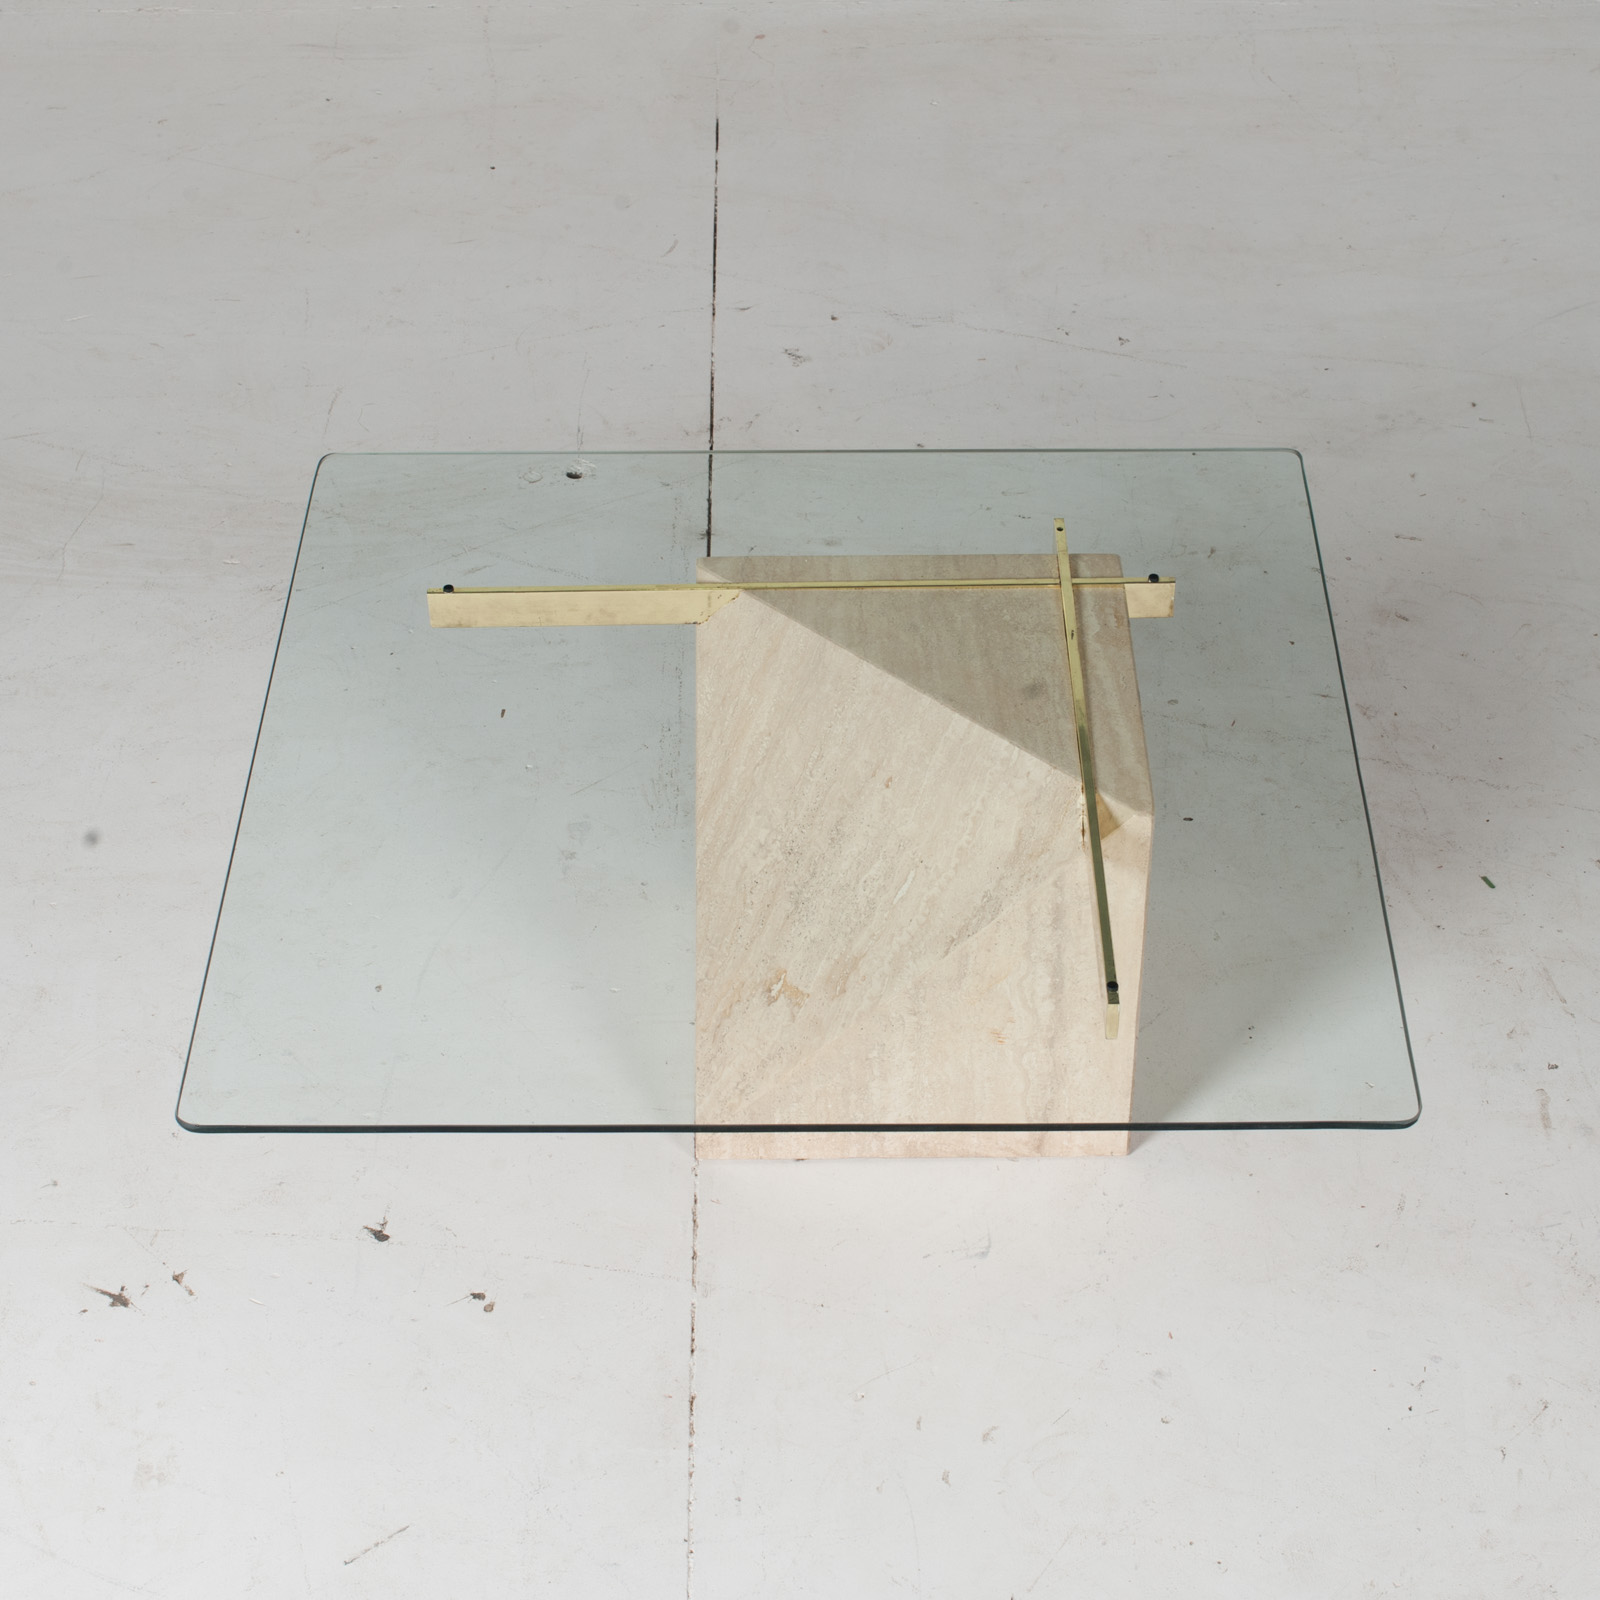 Coffee Table By Artedi In Travertine, Cantilevered Glass And Brass, 1970s, Italy3